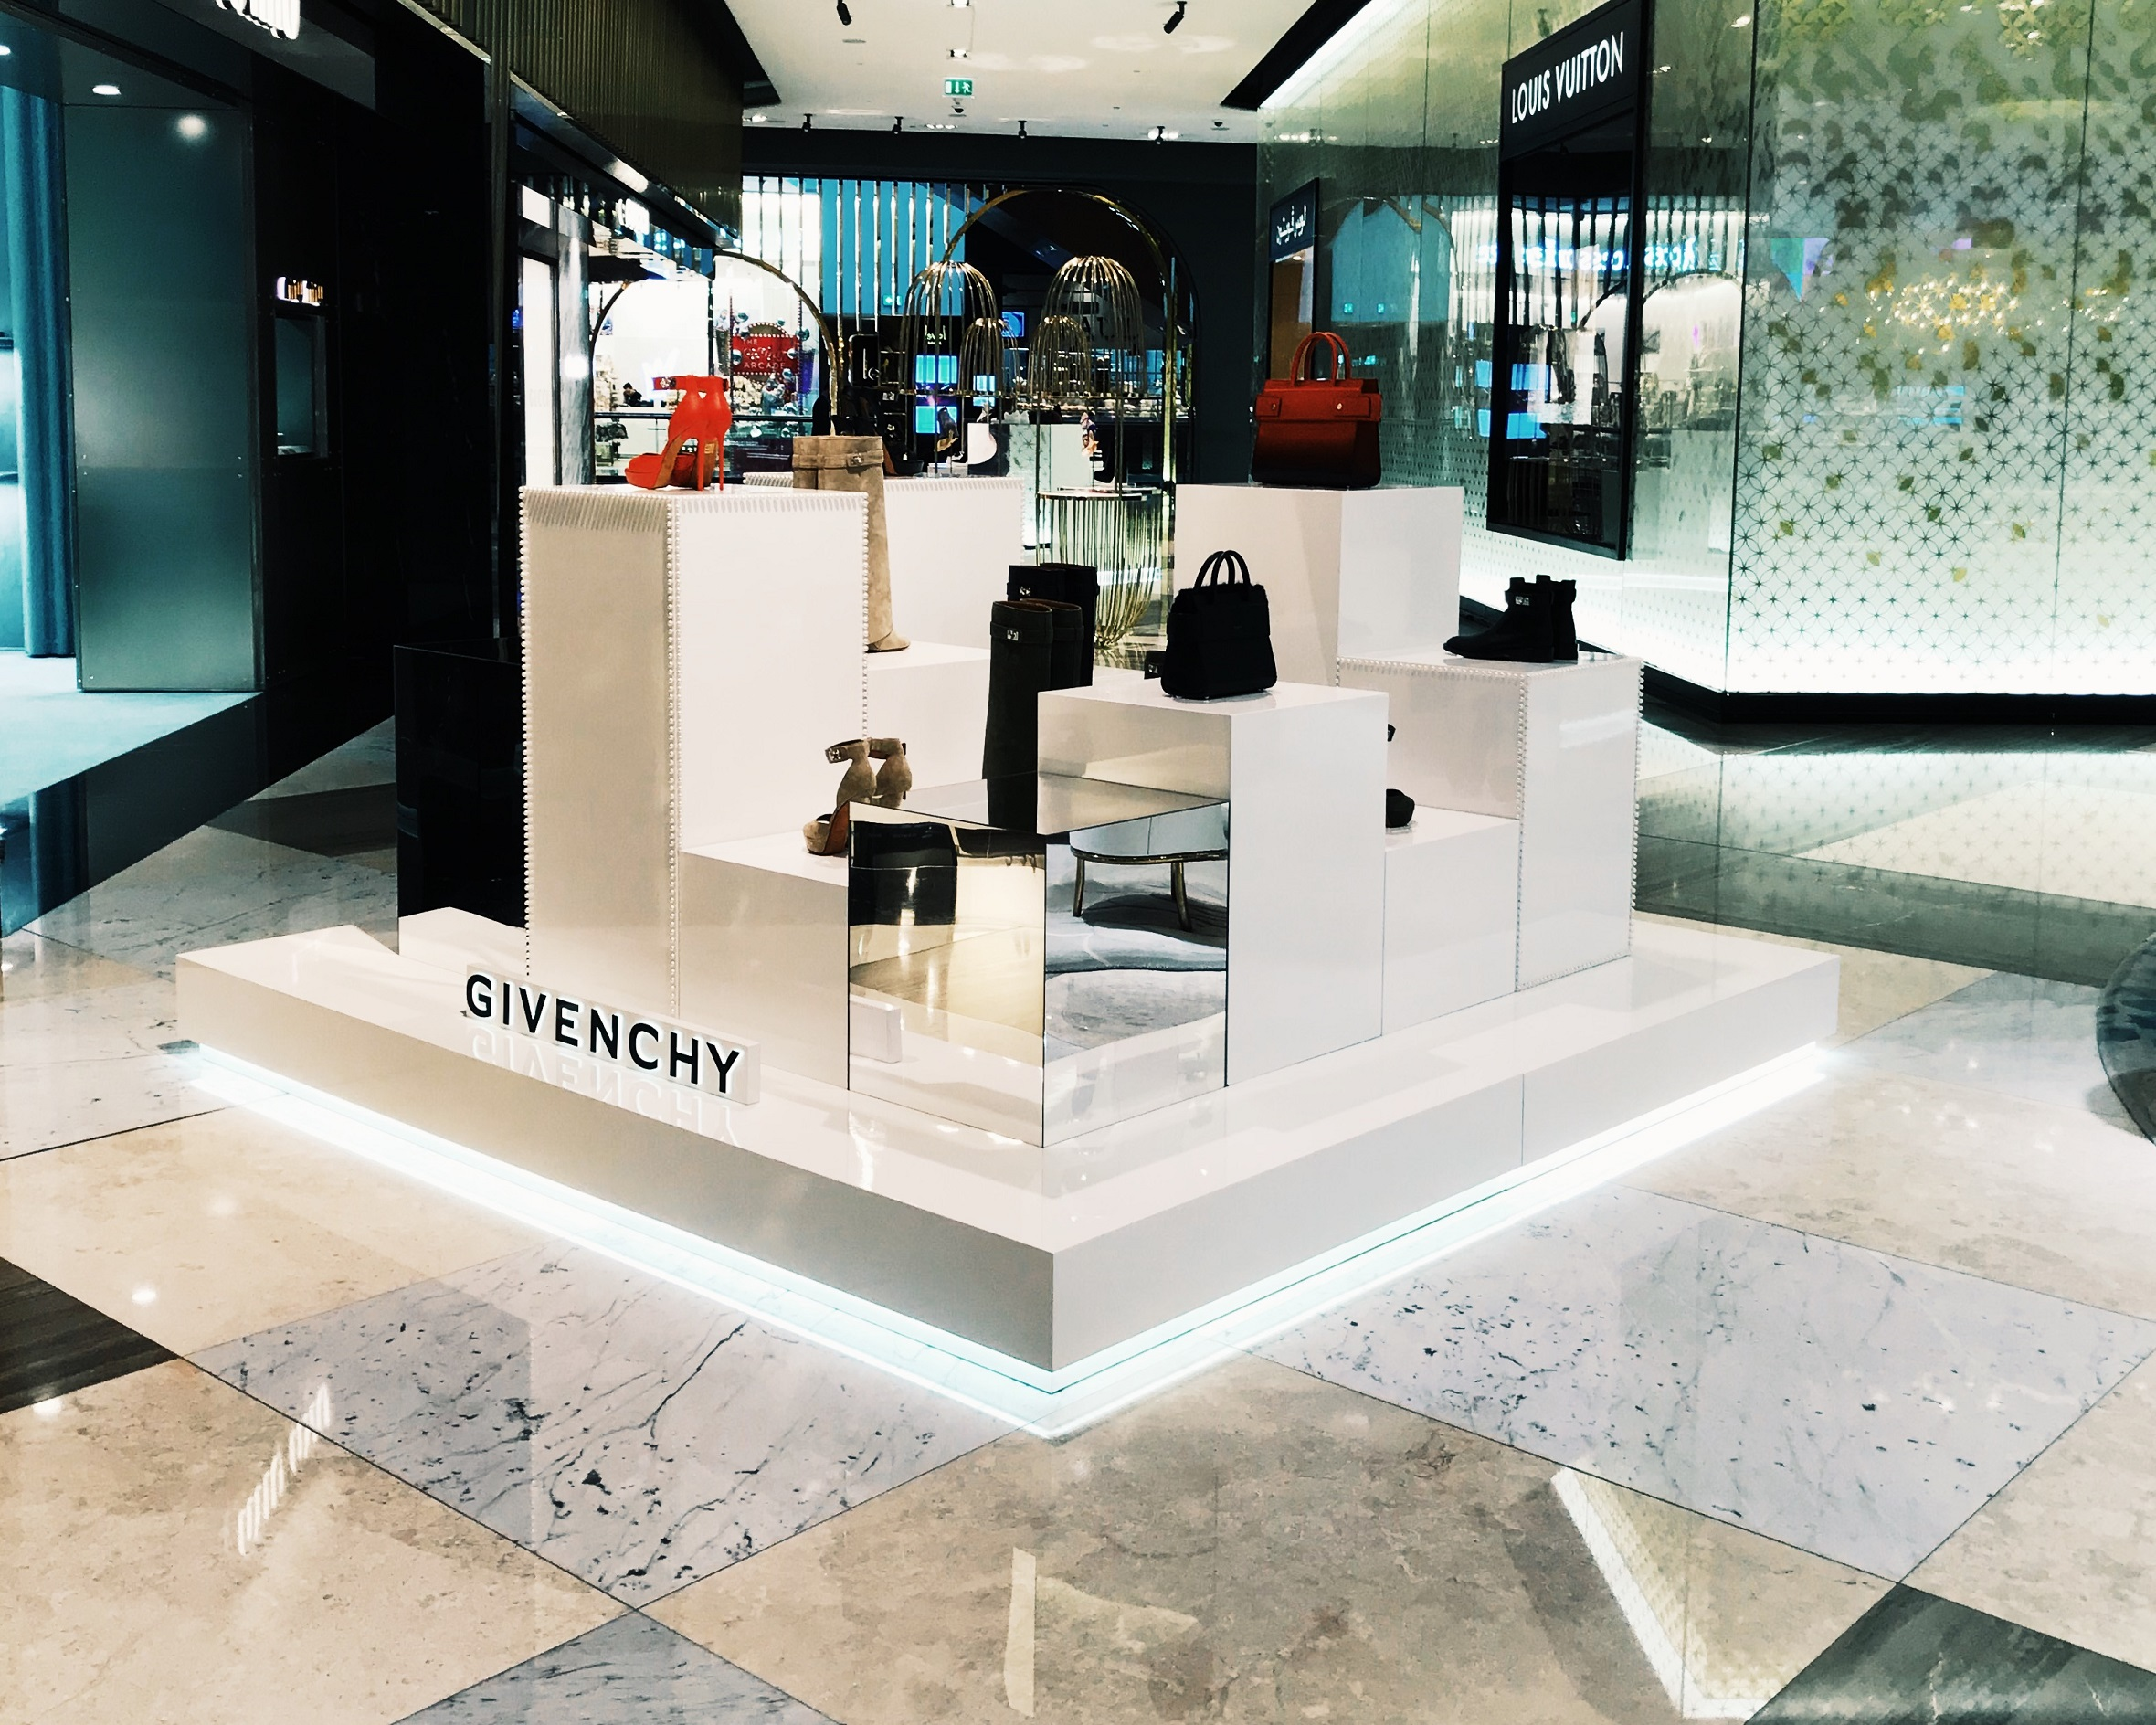 Givenchy | Fashion | 638-17, Givenchy, Givenchy, Pop-Up Stores, Level Shoes | The Dubai Mall | Dubai